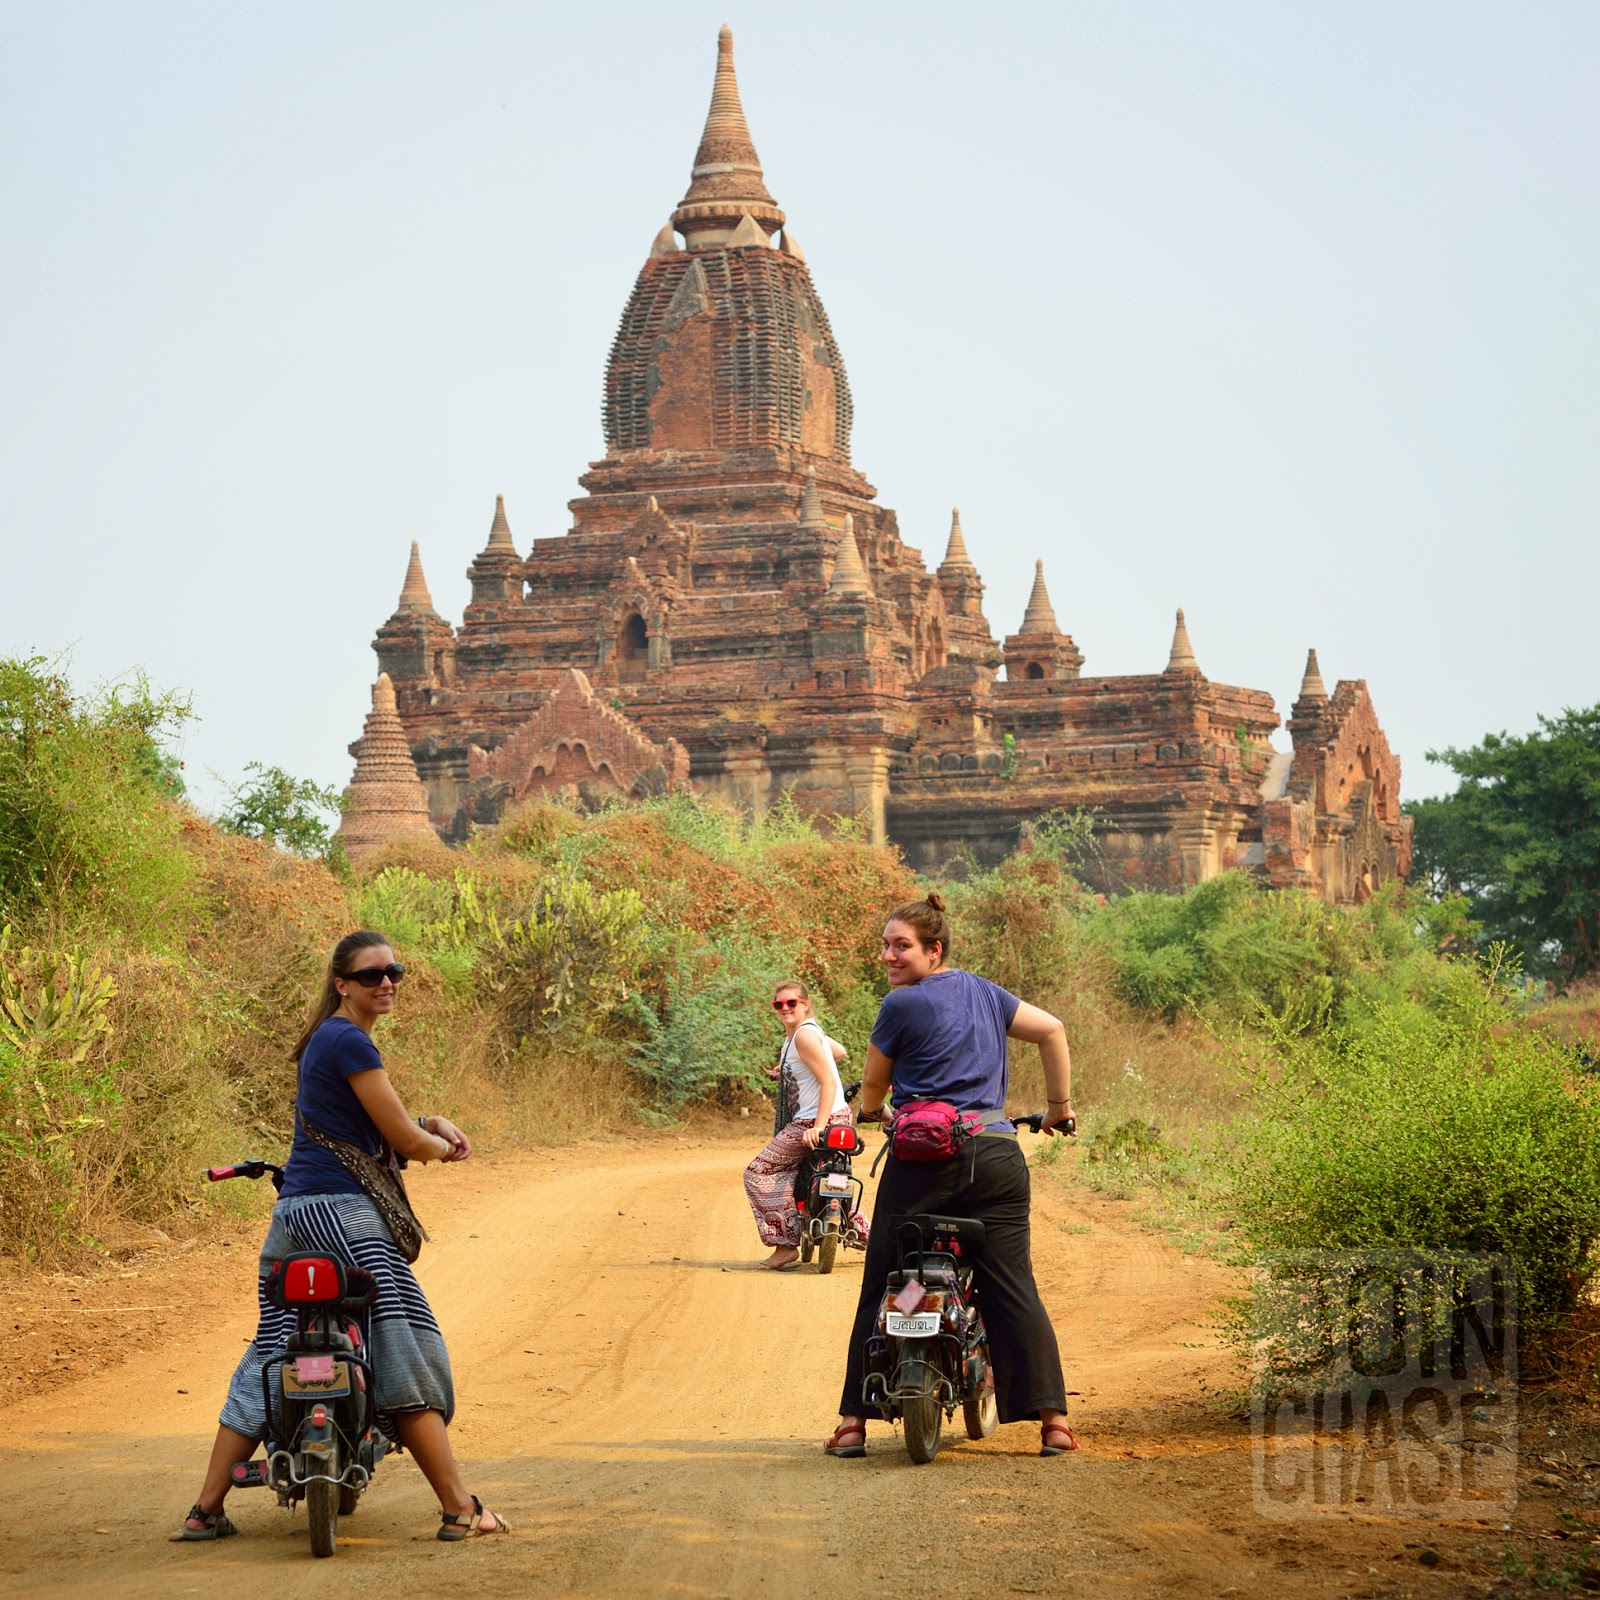 Riding electric scooters around ancient temples of Old Bagan, Myanmar.